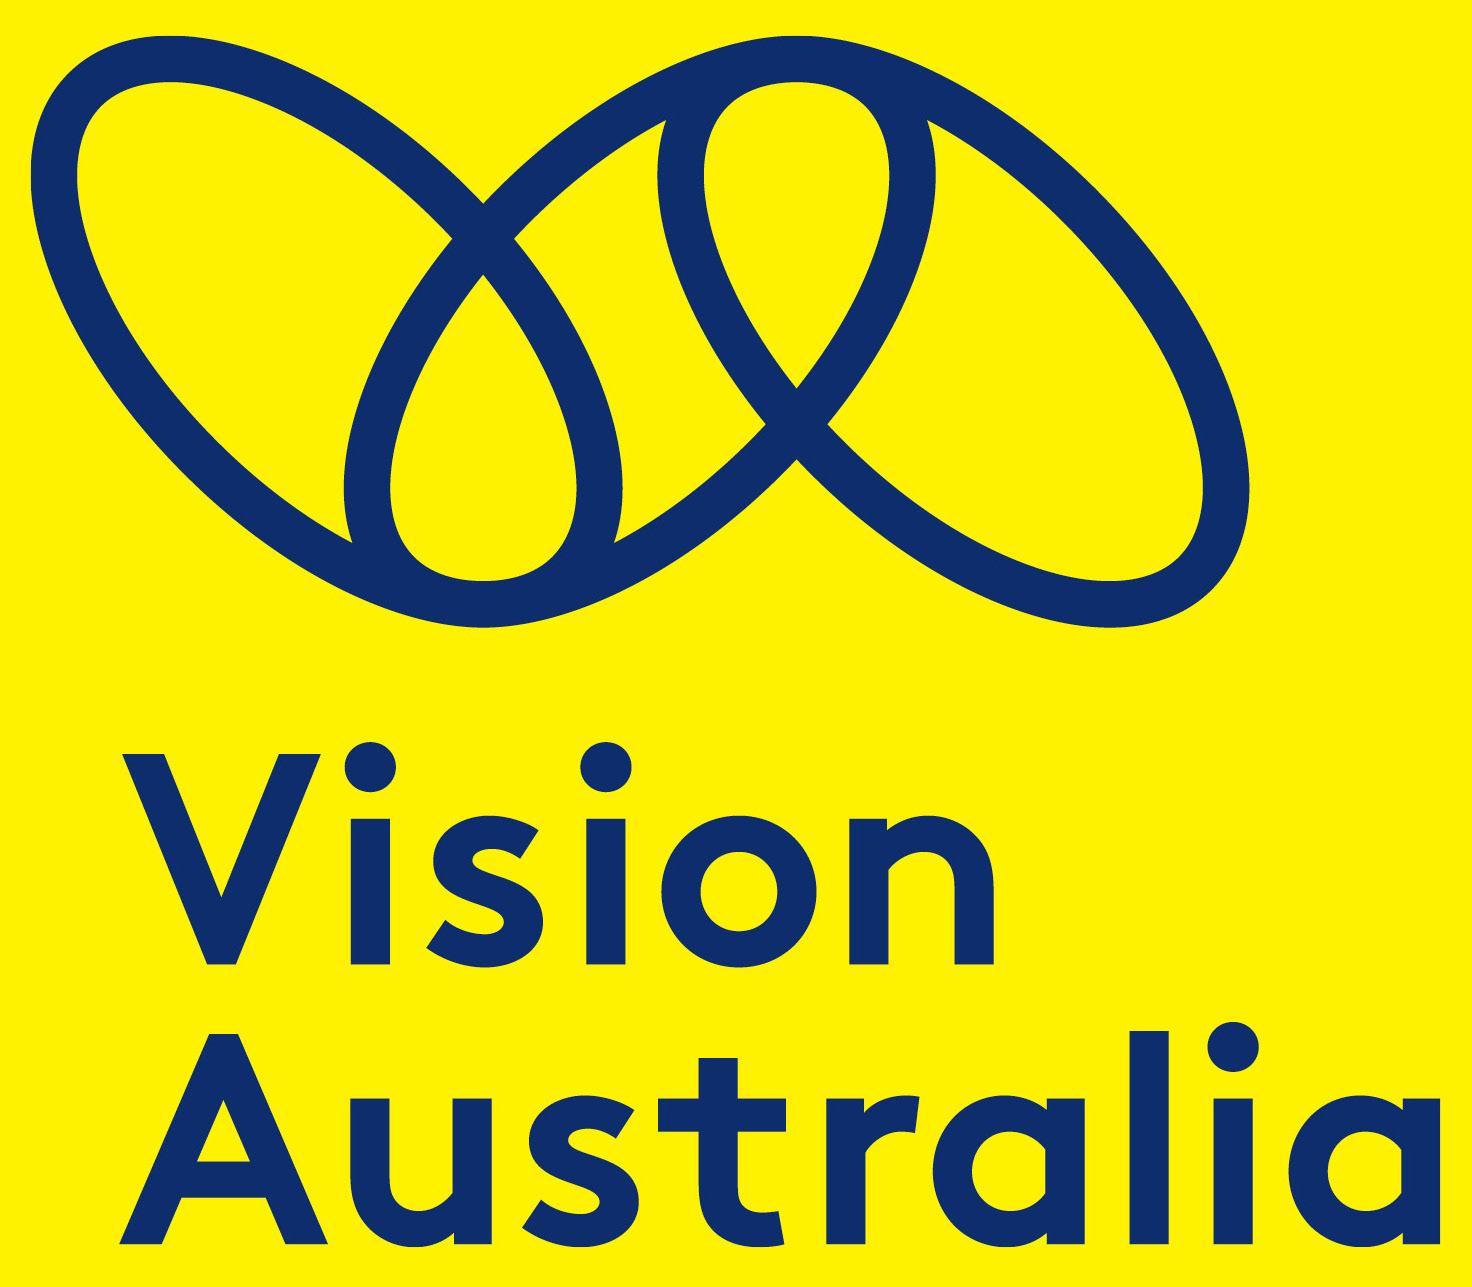 Vision Australia S Rebrand A Story Of Collaboration And